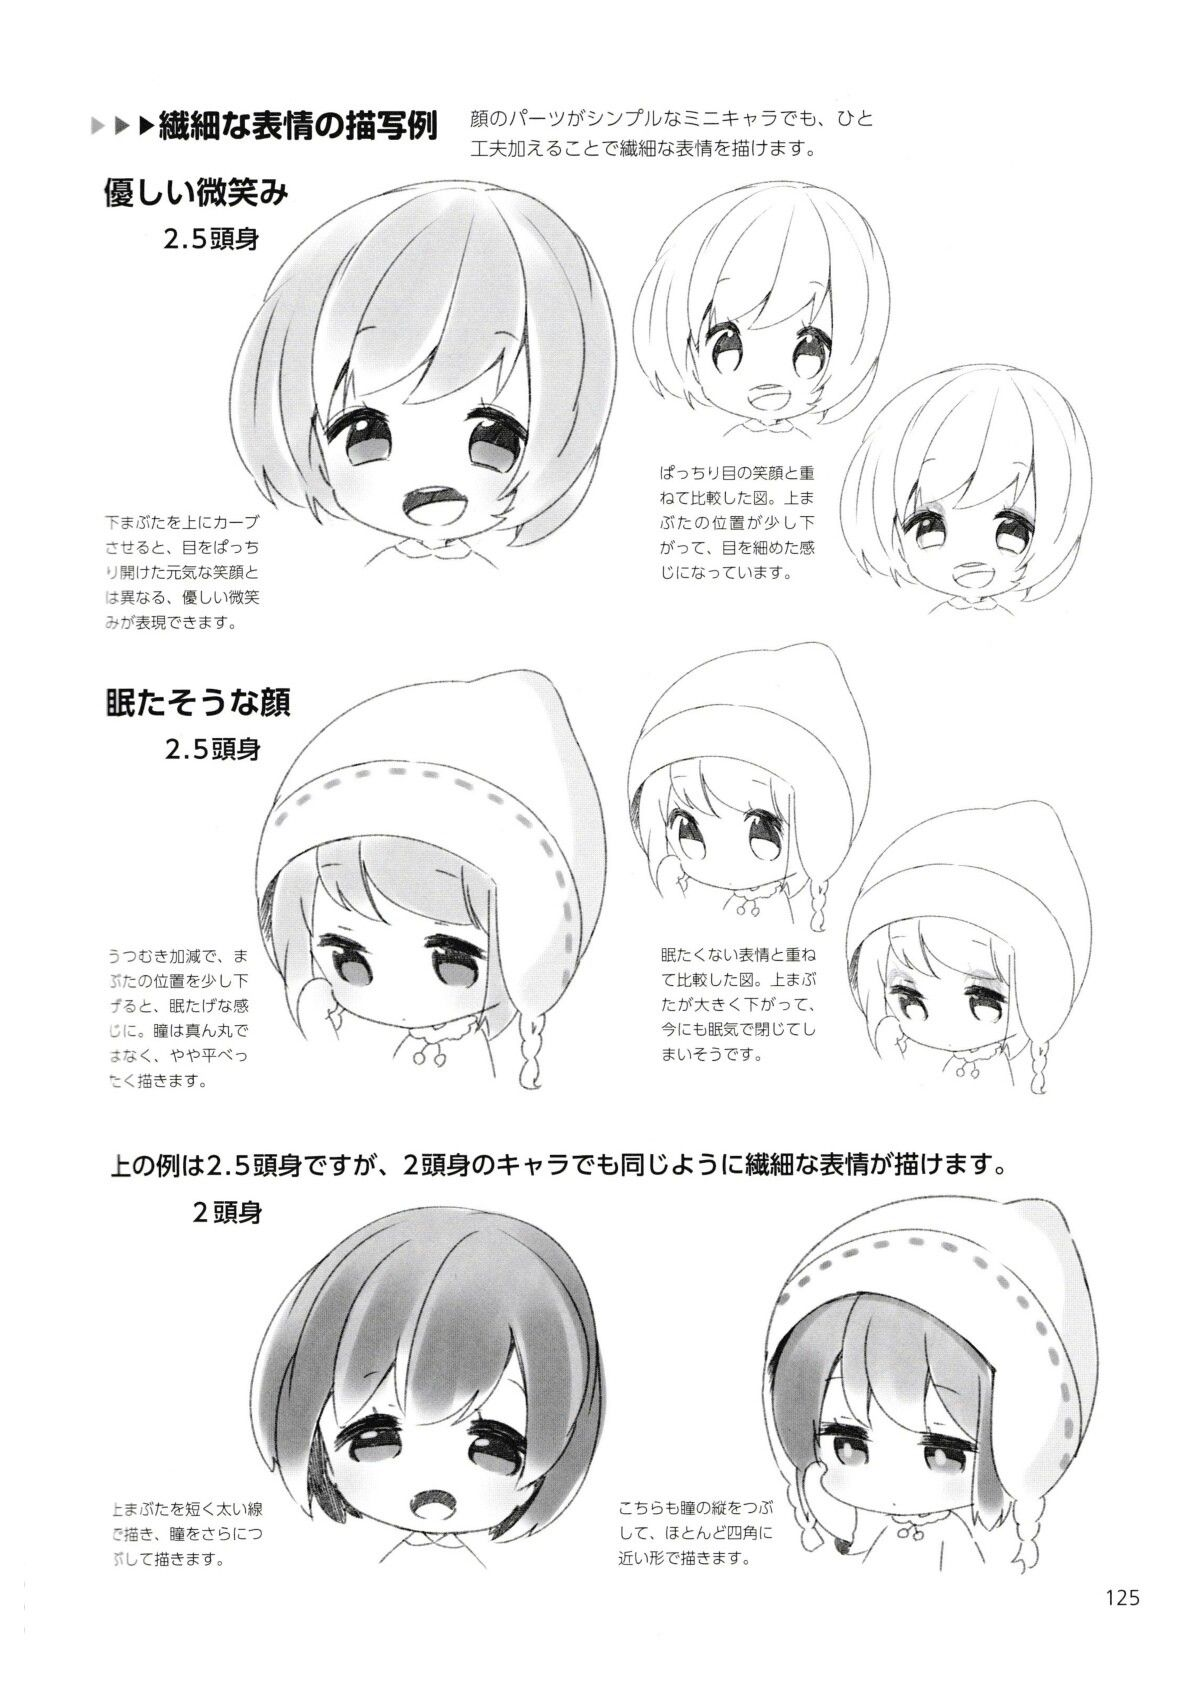 How To Draw Chibis 125 Anime Drawing Books Manga Drawing Tutorials Anime Drawings Sketches